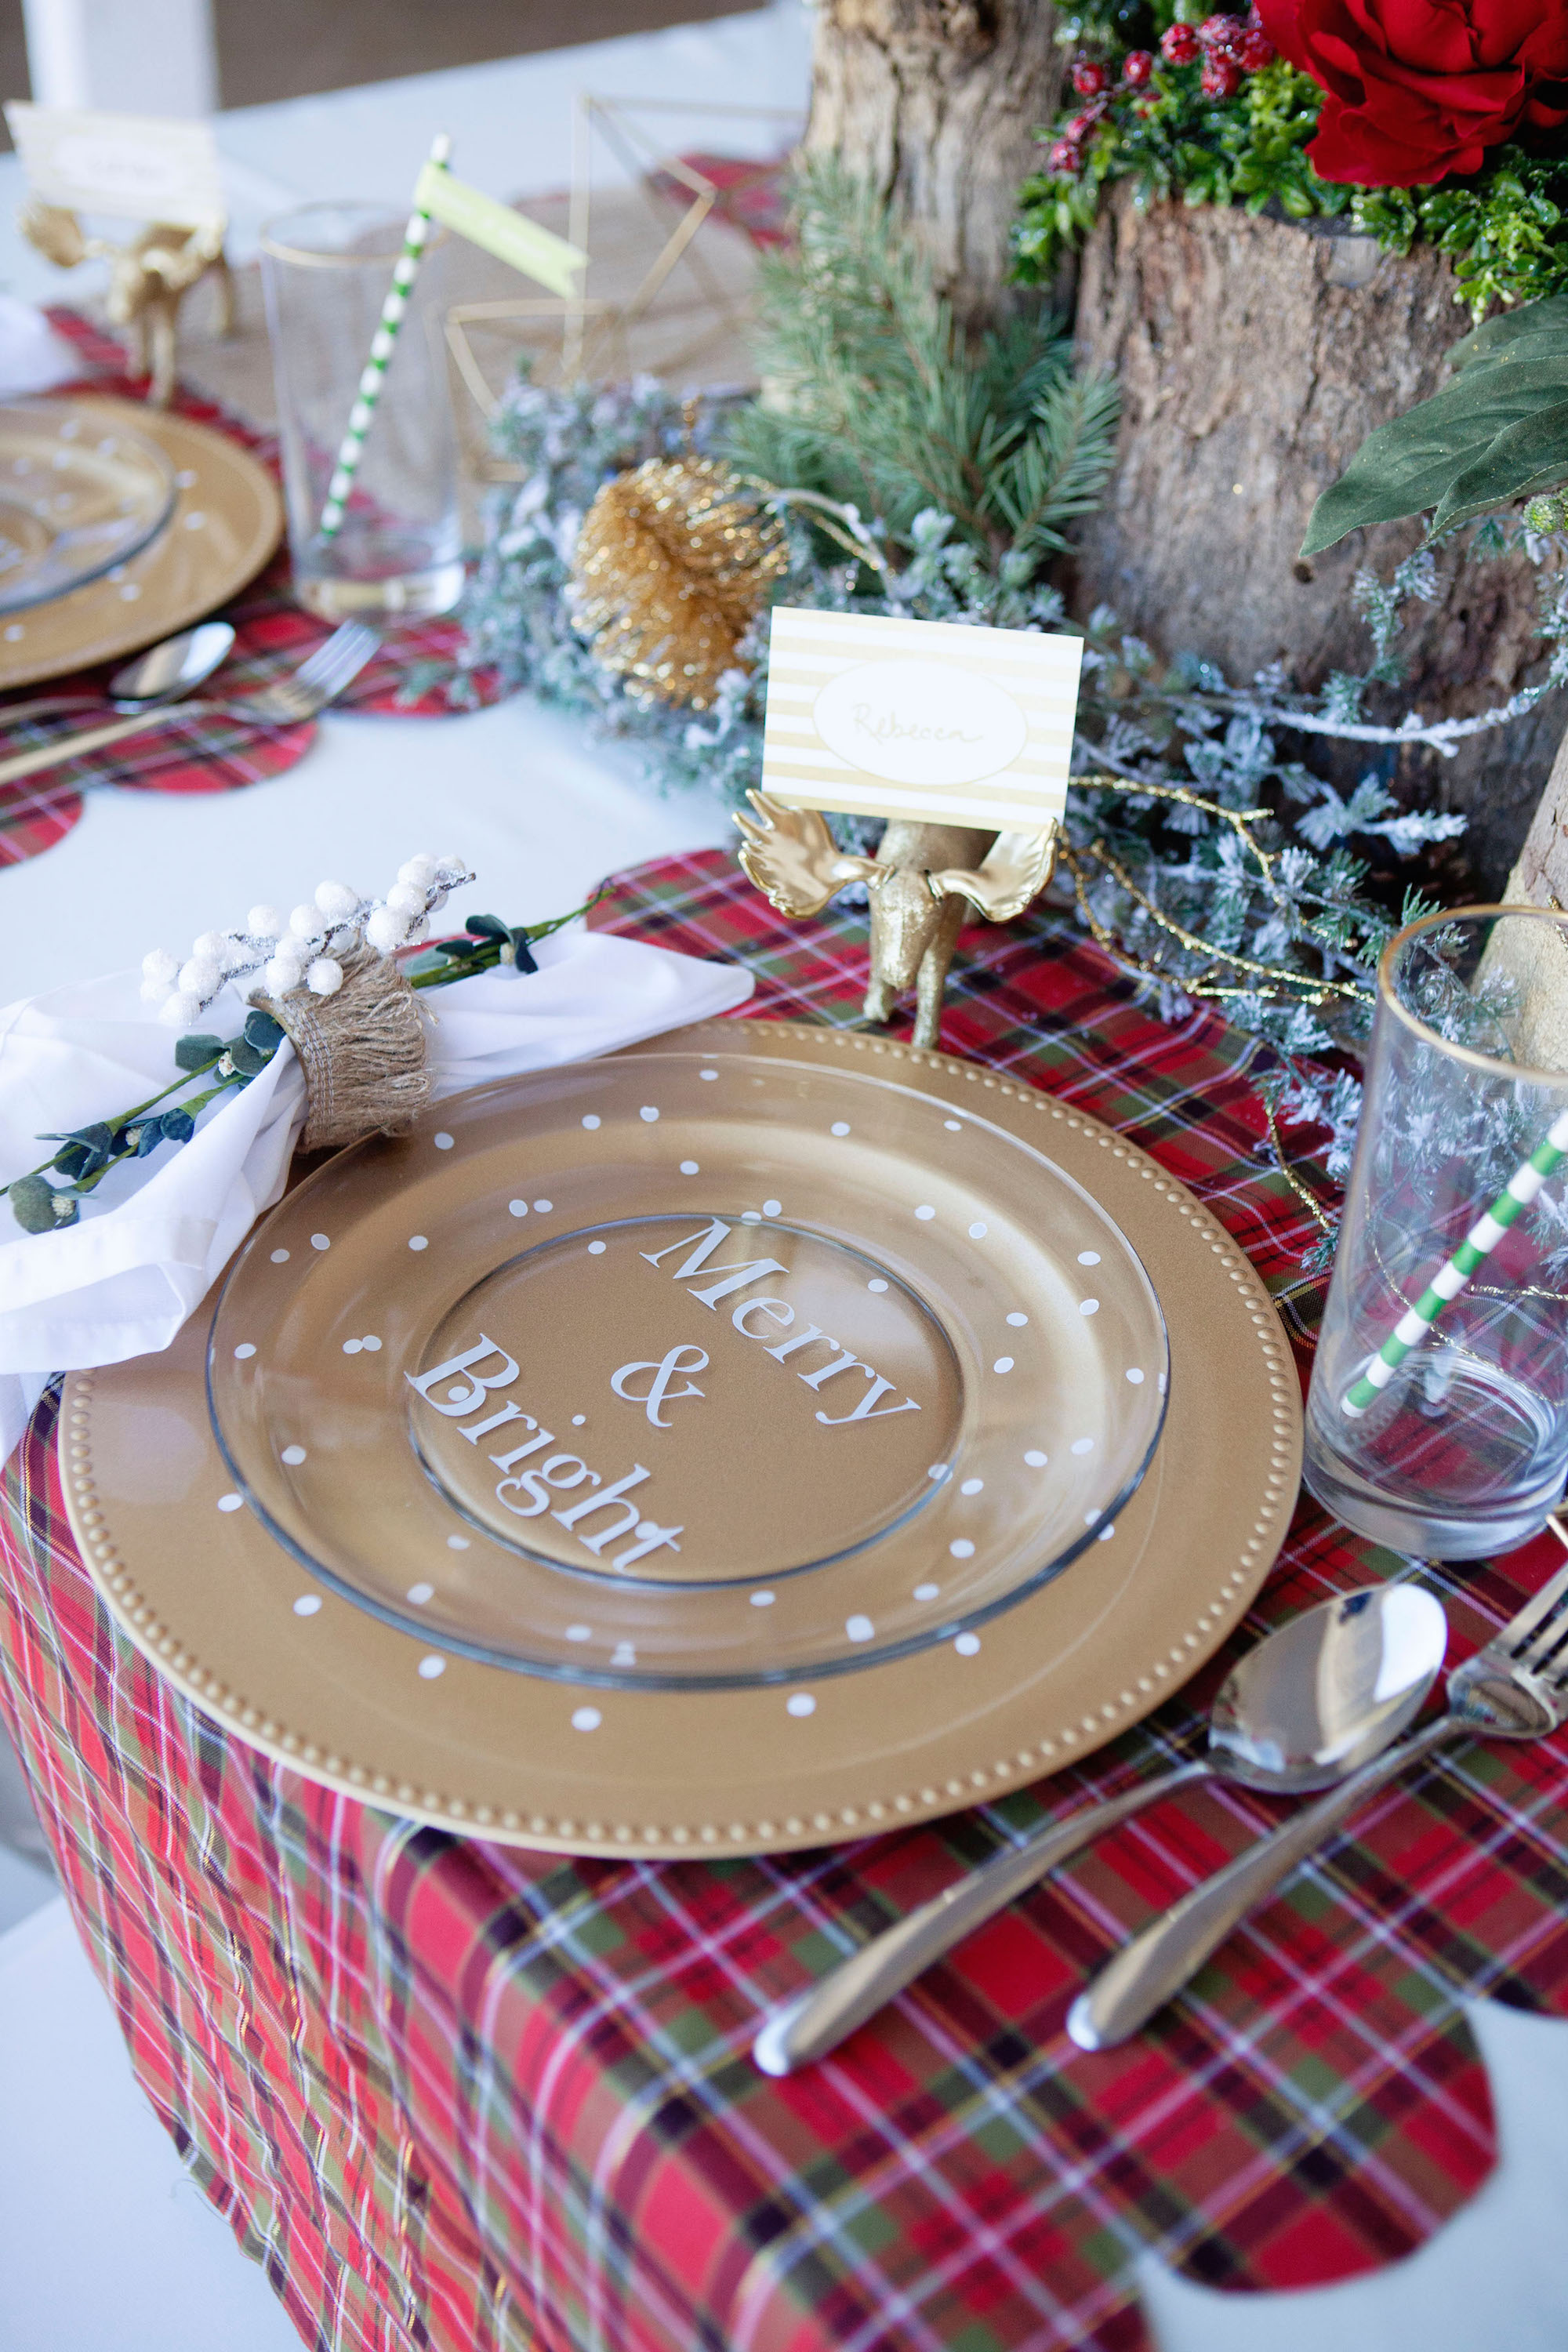 How to dress up a plain plate and gold charger Christmas table dressing